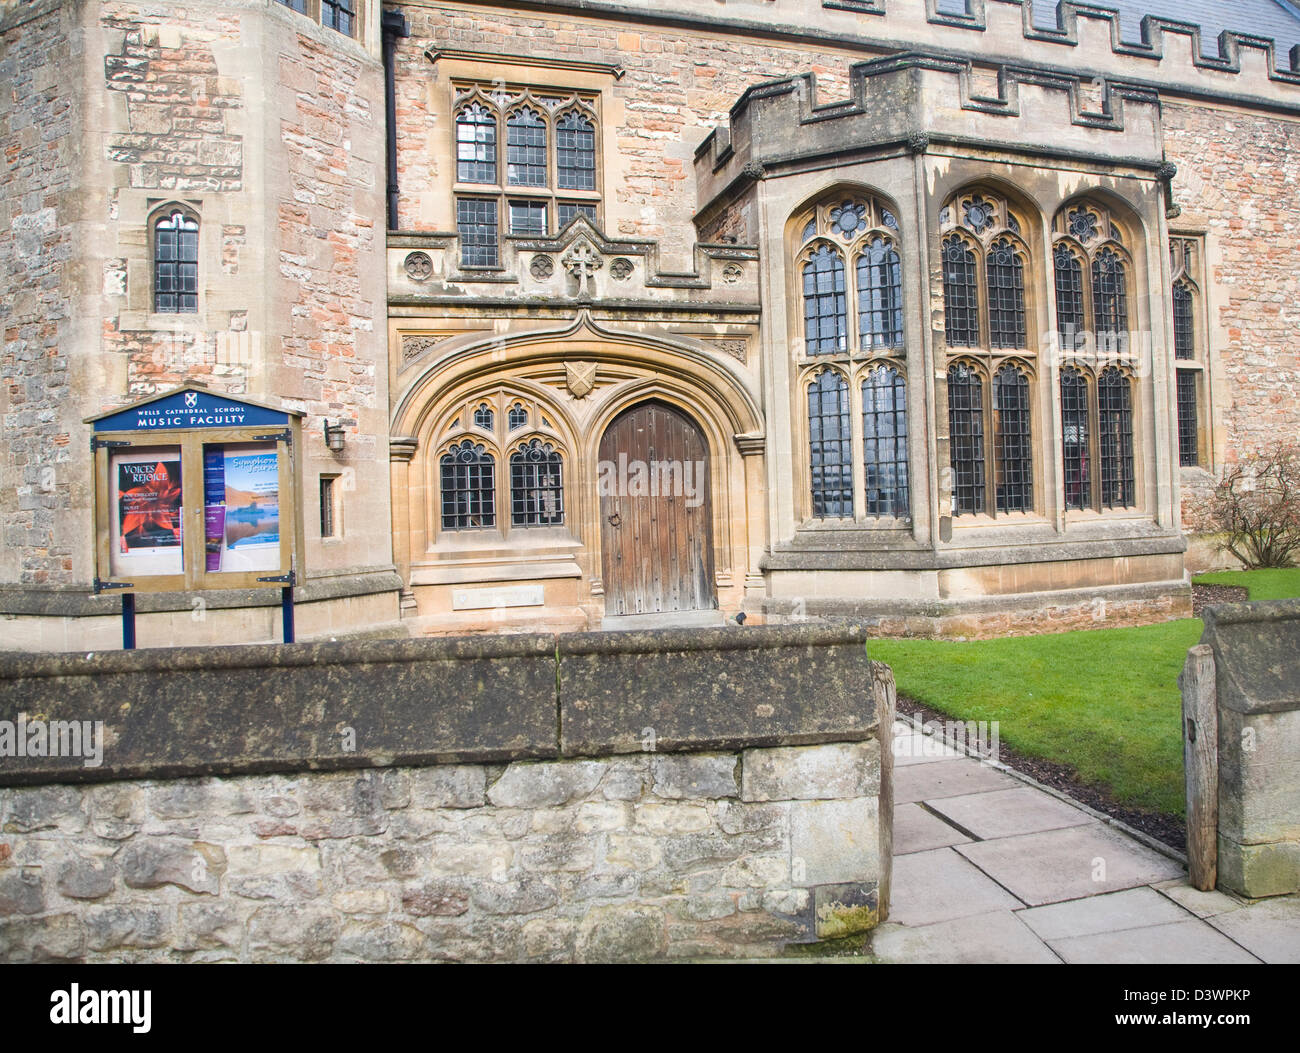 Wells Cathedral School music faculty housed in historic building in part dating back to 1500s, Wells, Somerset, - Stock Image